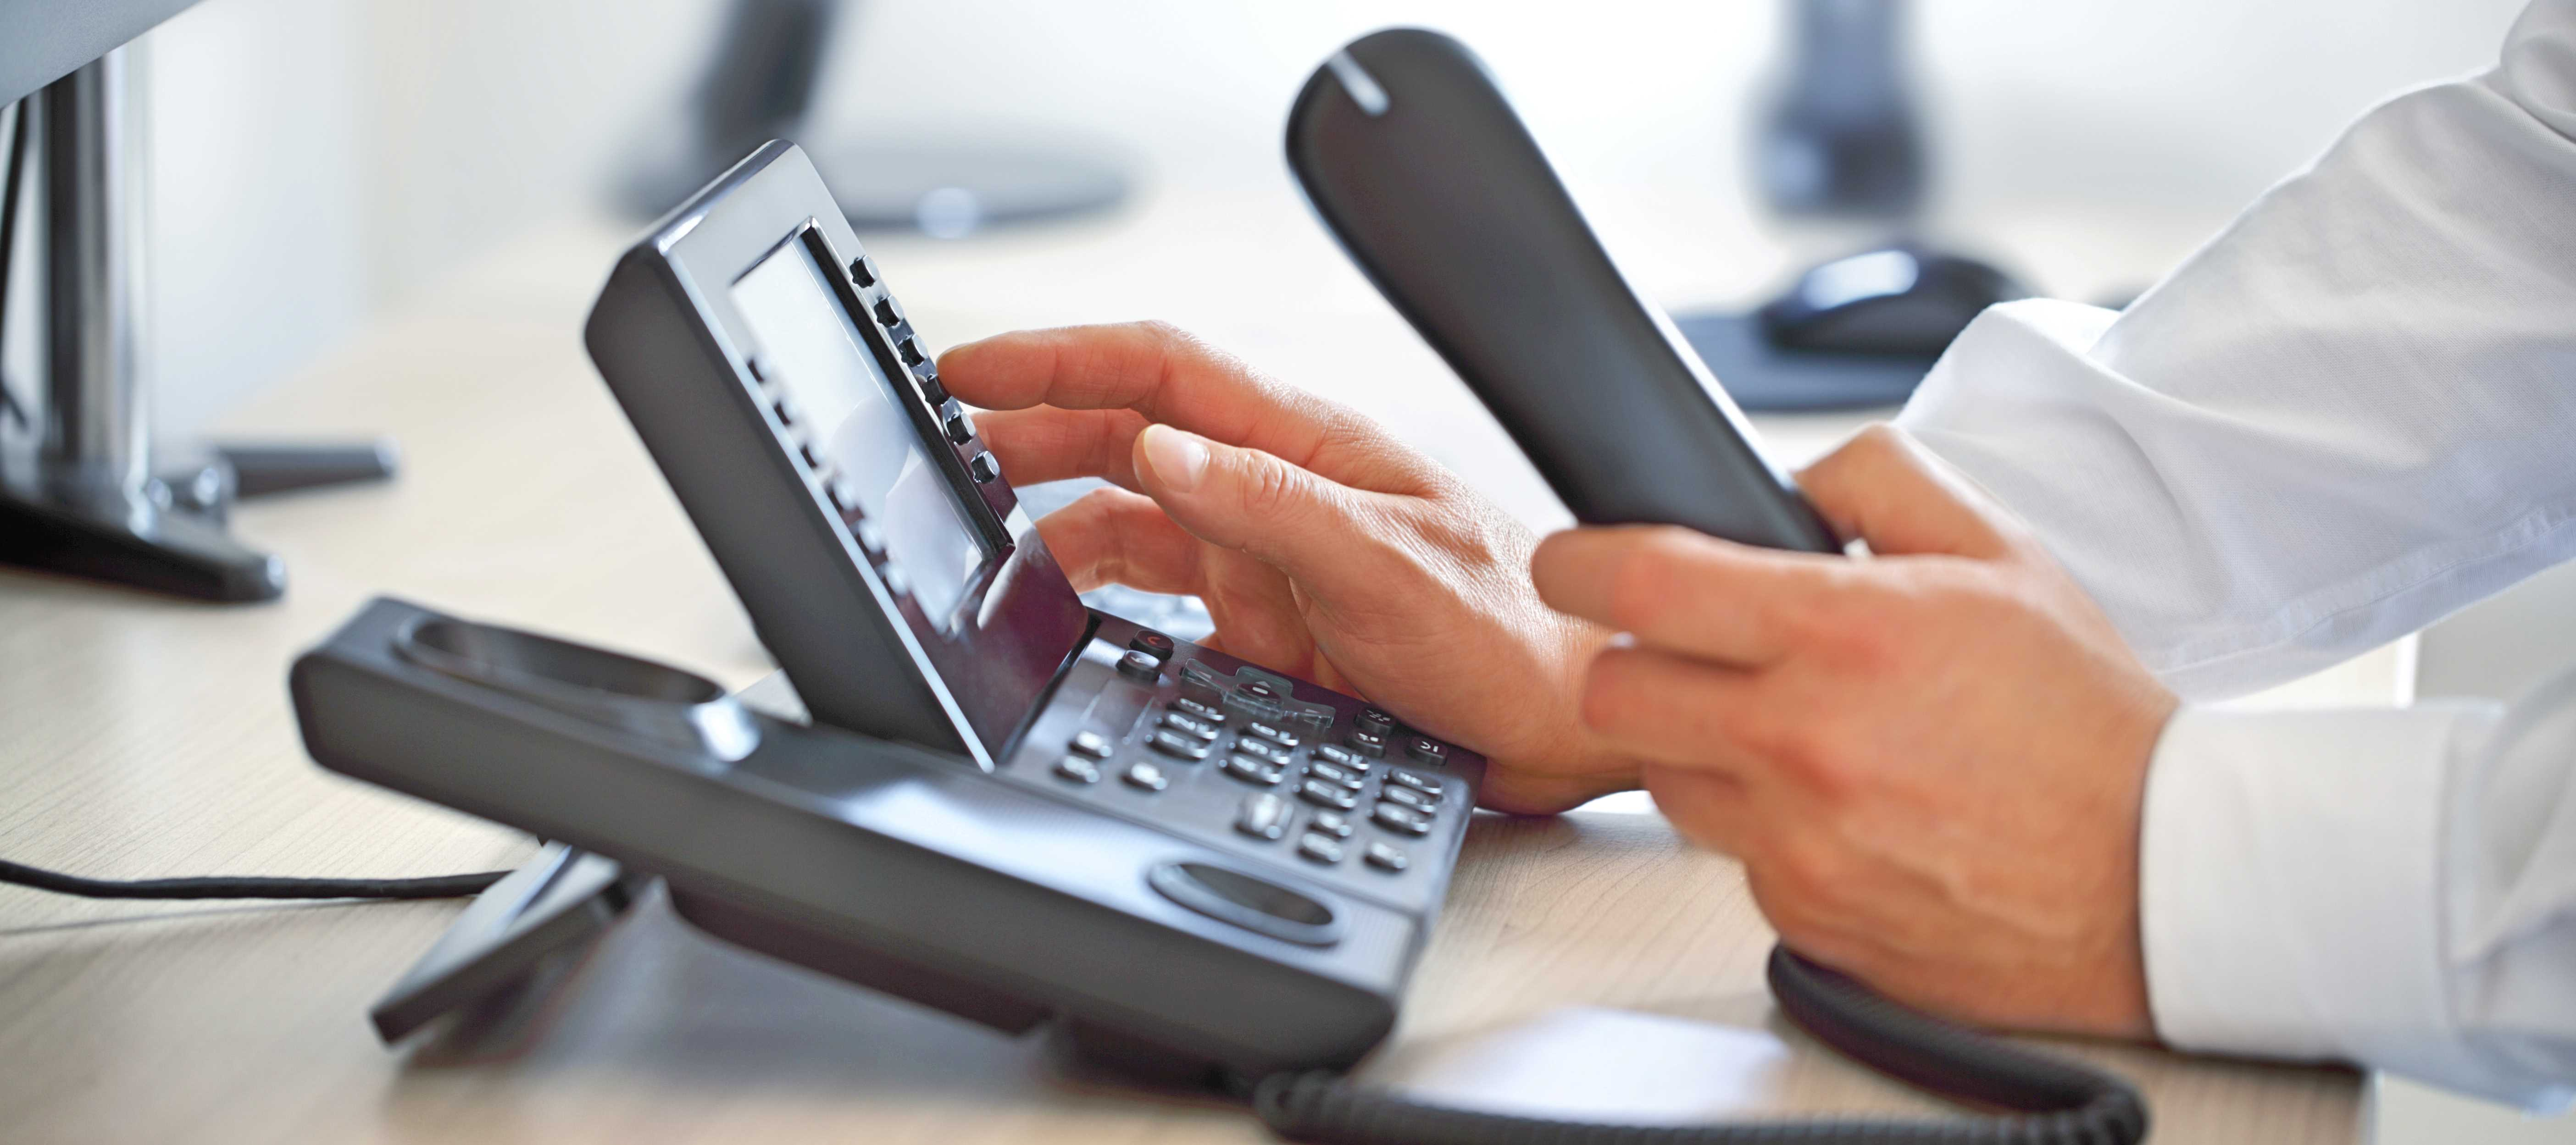 How to Clean Office Phones - Cleaning Services in Springfield MO